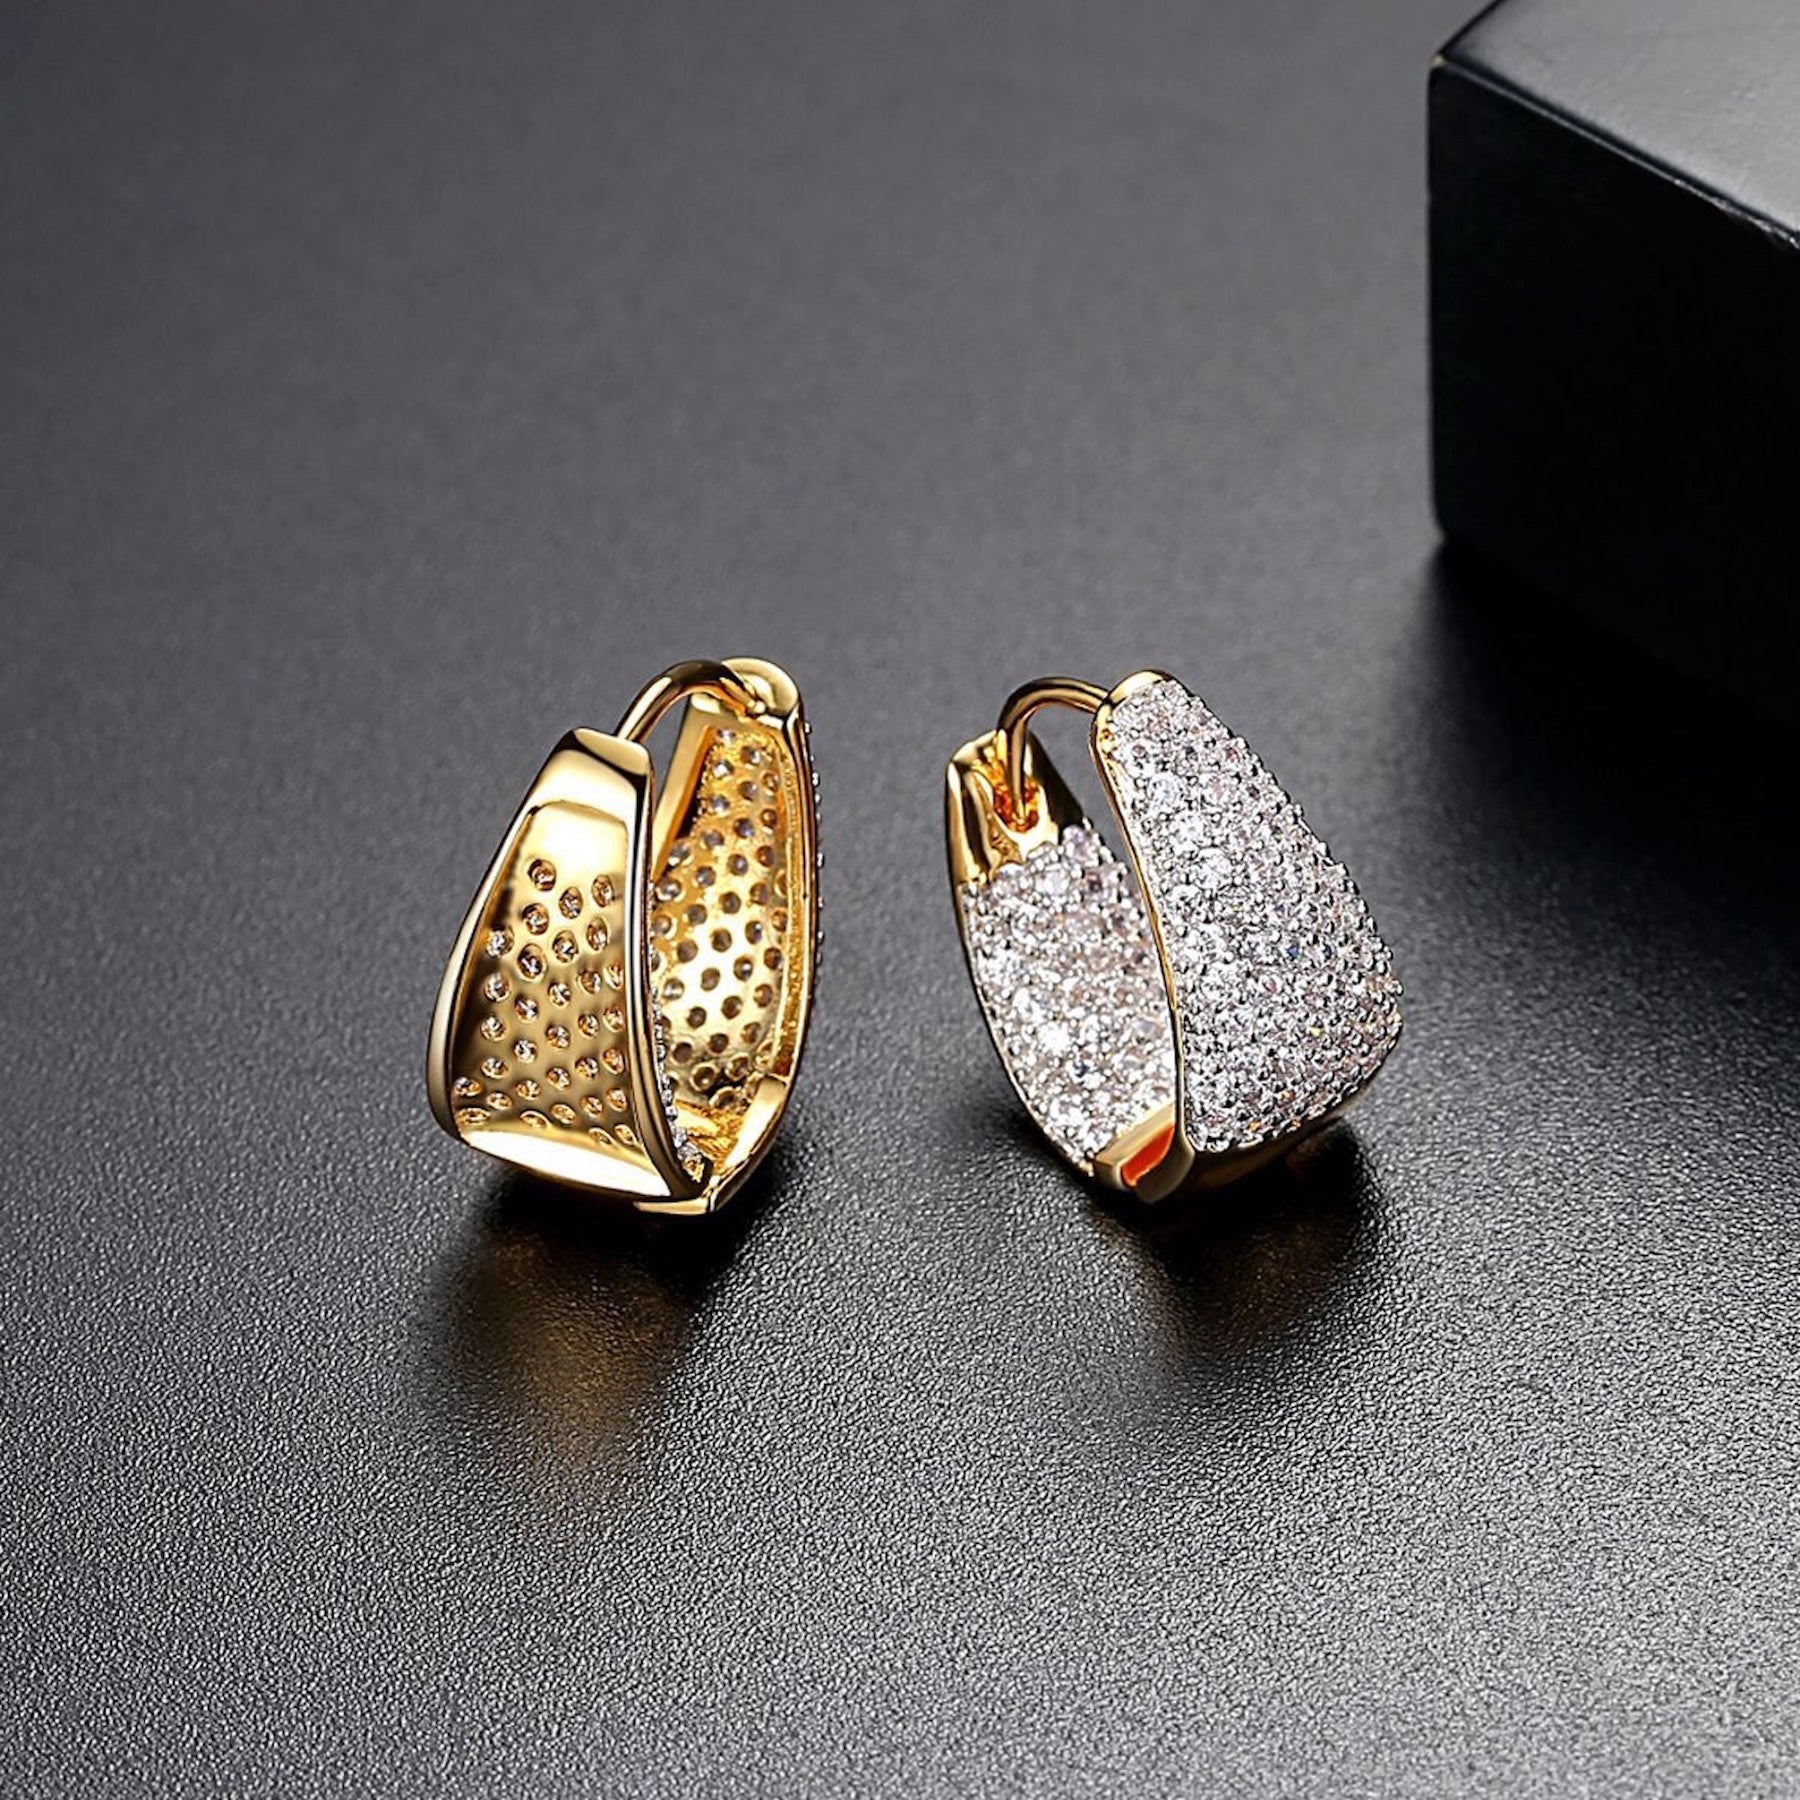 18K Gold Plated Pave Cluster Hoop Earrings - GRACE BOUTIQUE UK women jewellery necklace earring bracelet ring broach scarf wrap shawl accessories